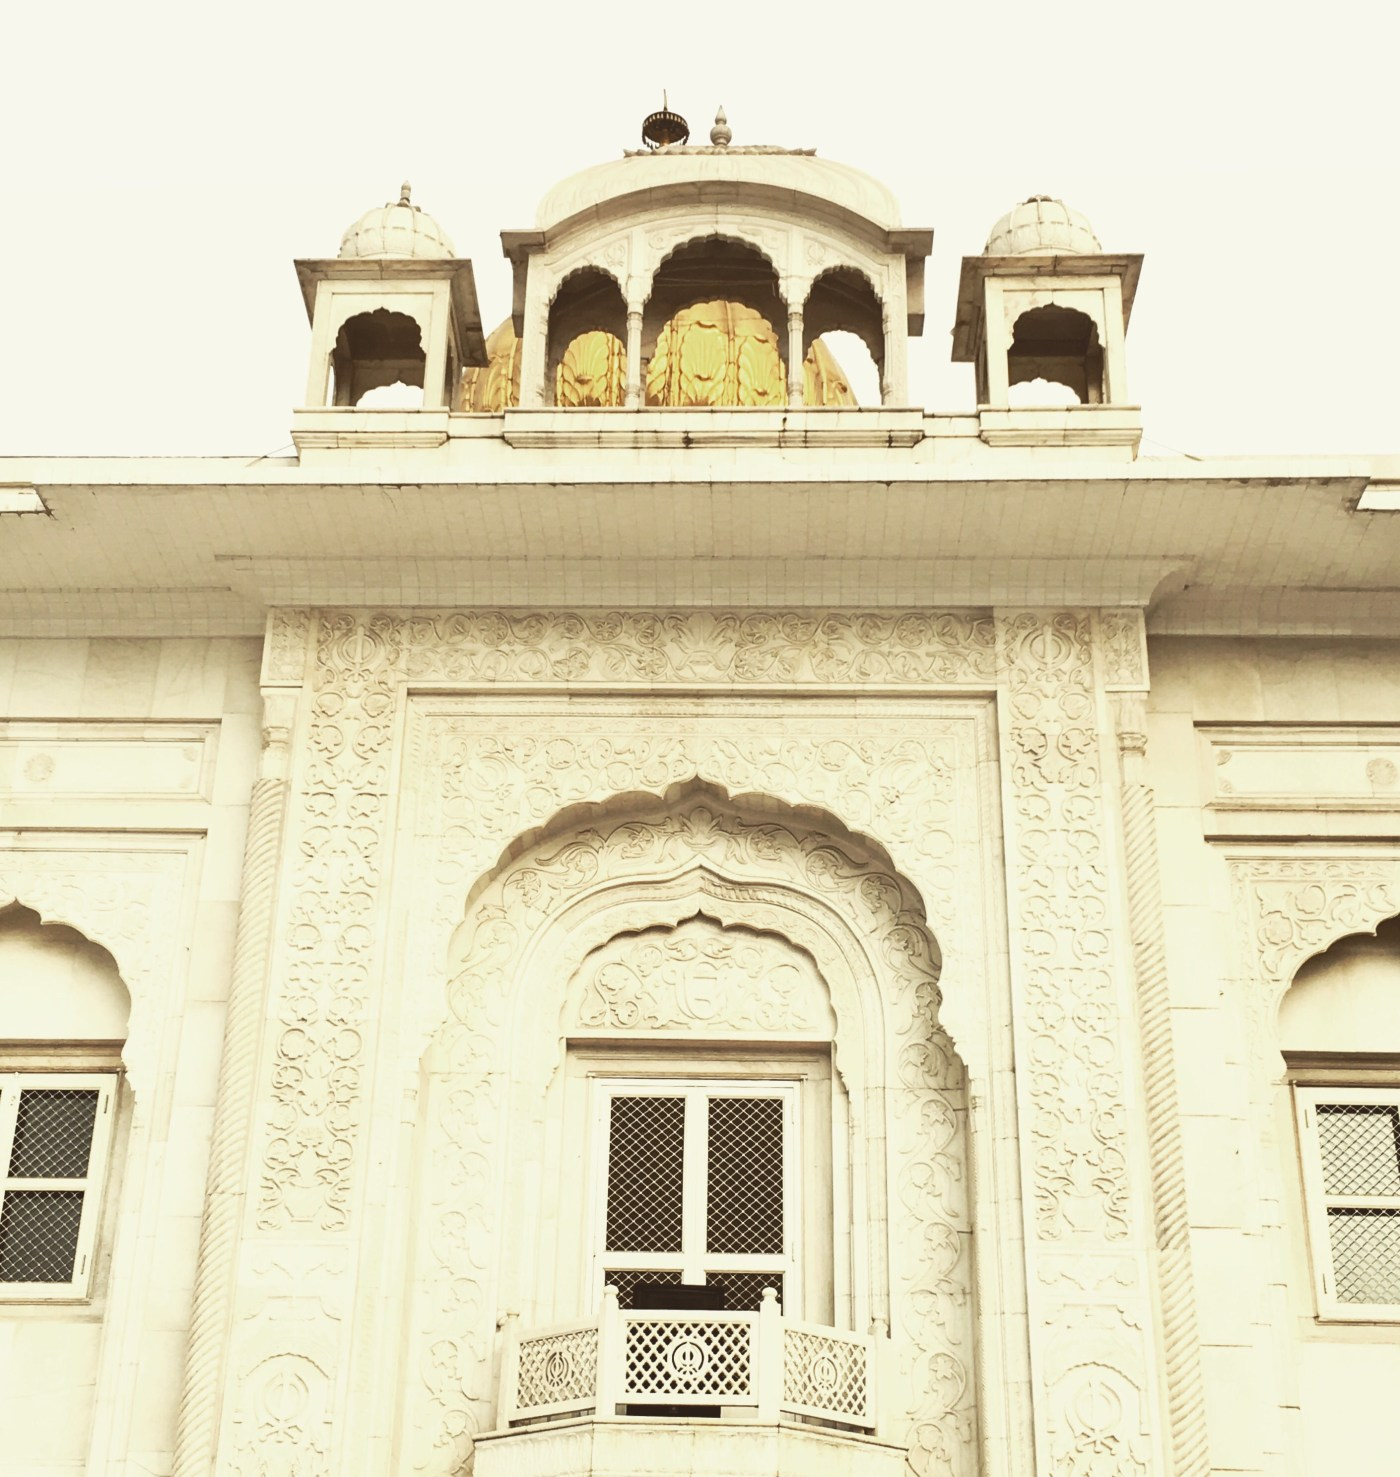 Exteriors of the Gurudwara Bangla Sahib, Delhi, India || Places to see in Delhi, India || Things to do in Delhi, India || Travelling || Travel